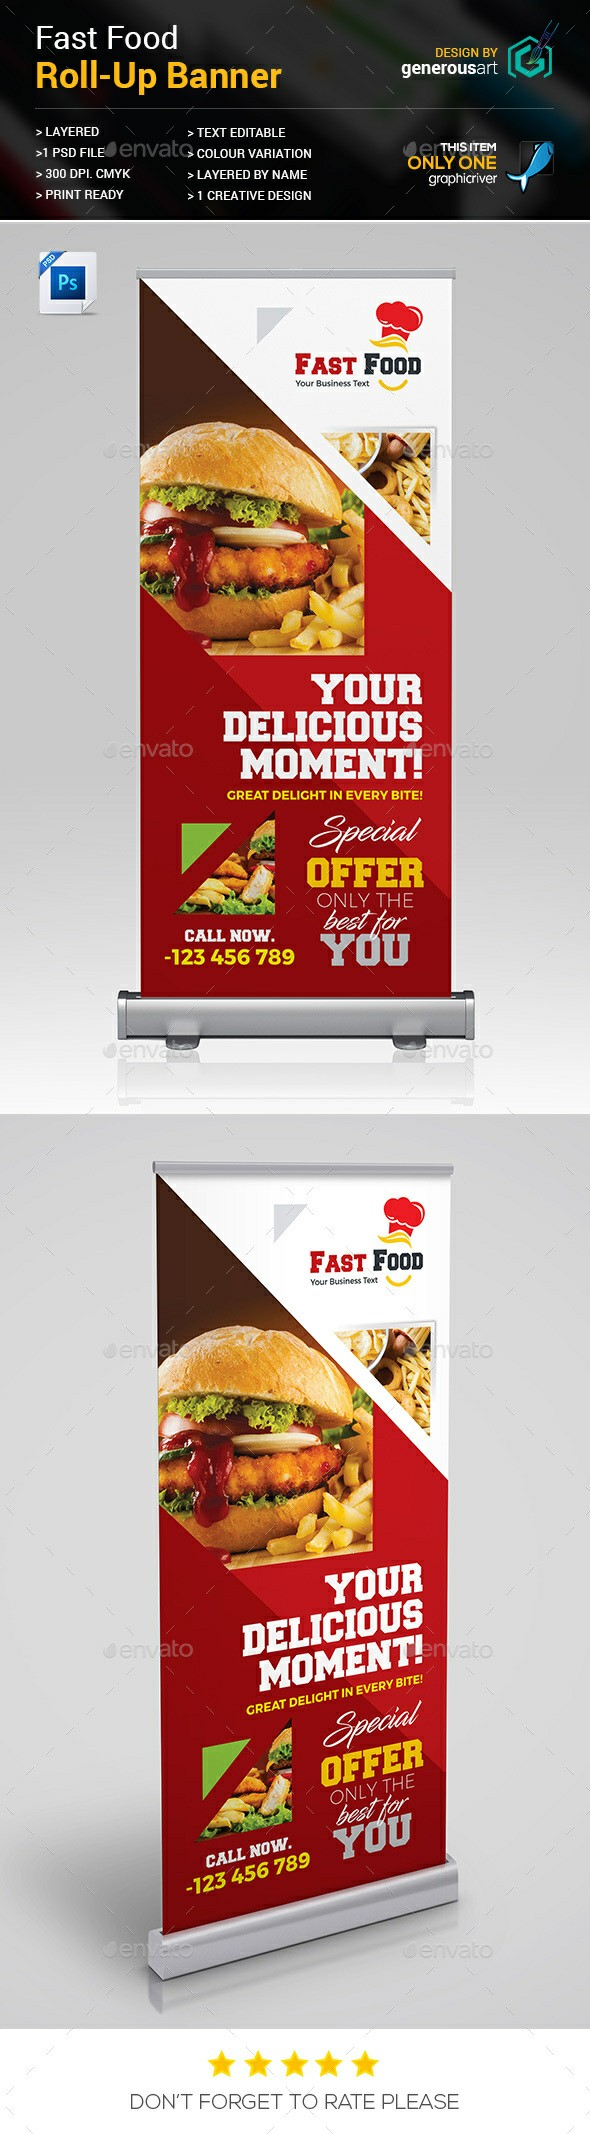 Pin By Sazzat Hassan On Banner Design Samples Pinterest Rollup